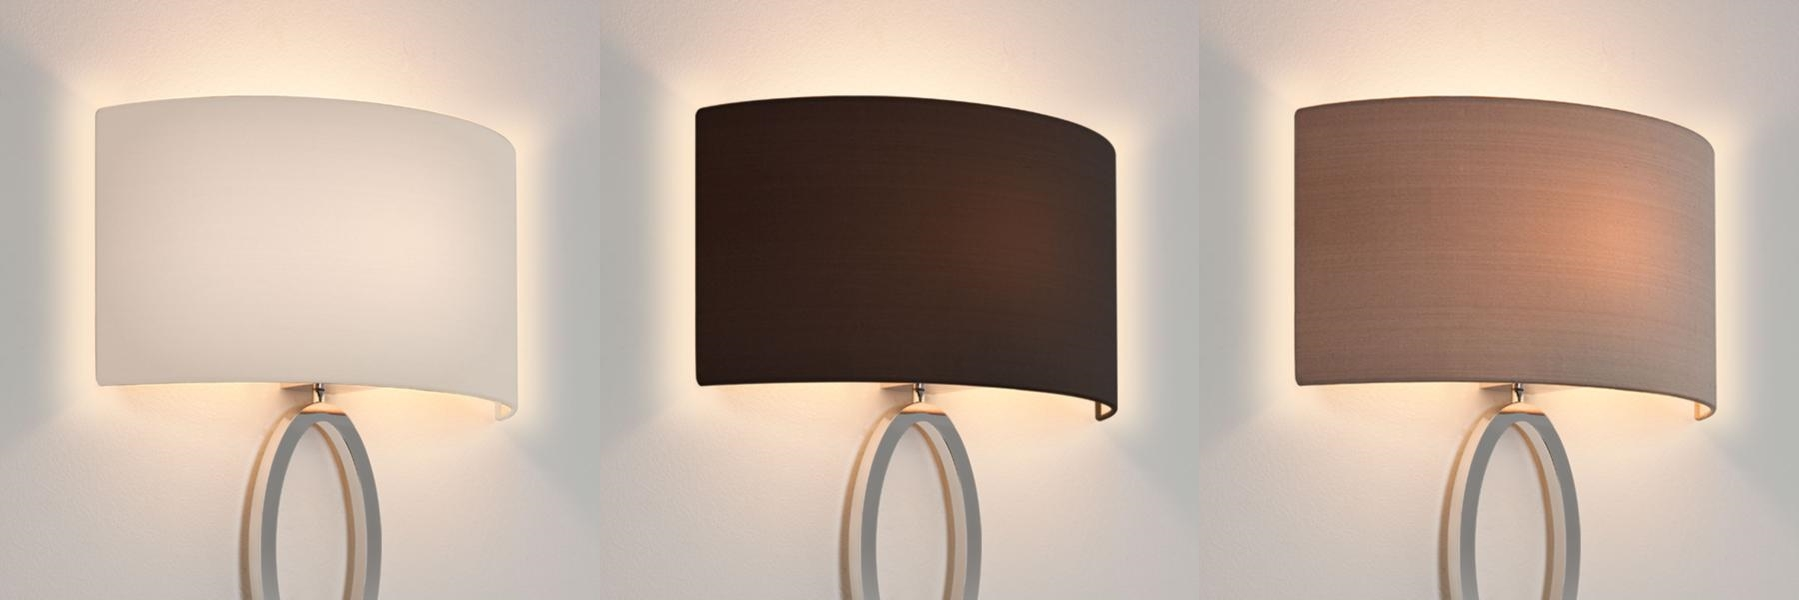 Childrens Wall Lamp Shades : Astro Lima fabric half lampshade for wall light with E27 / ES shade ring eBay